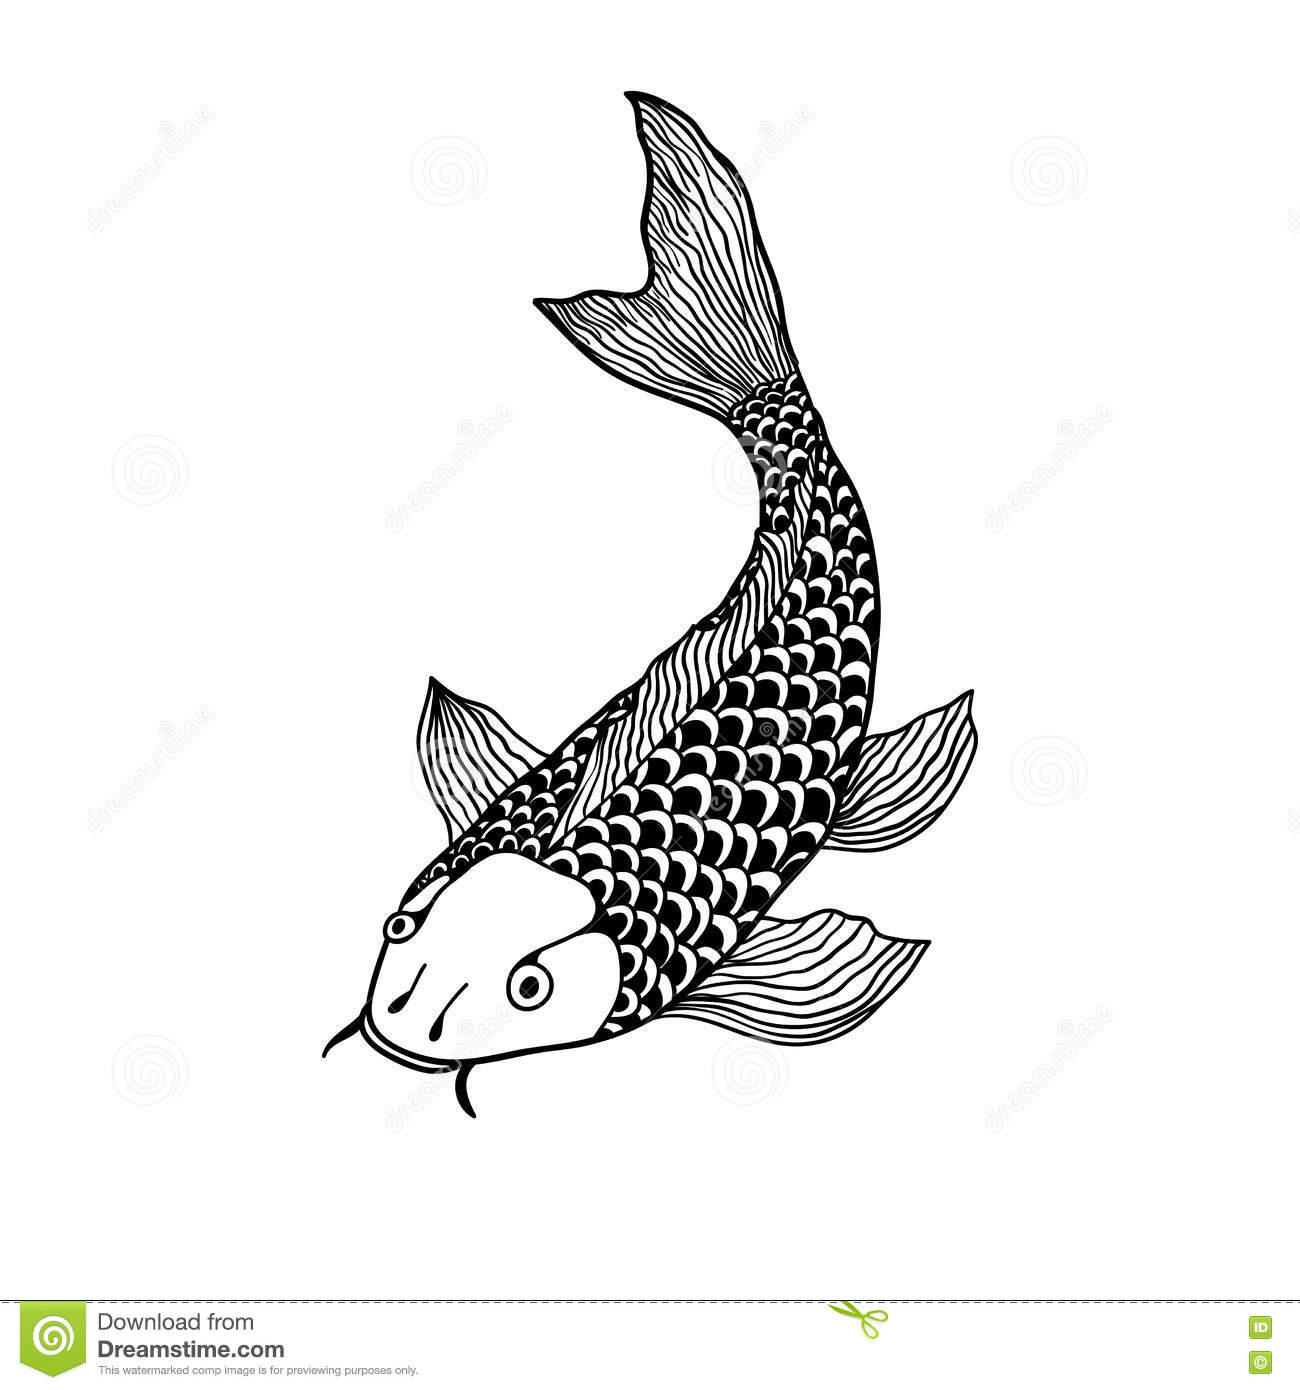 Beautiful Koi Carp Fish Illustration In Monochrome Symbol